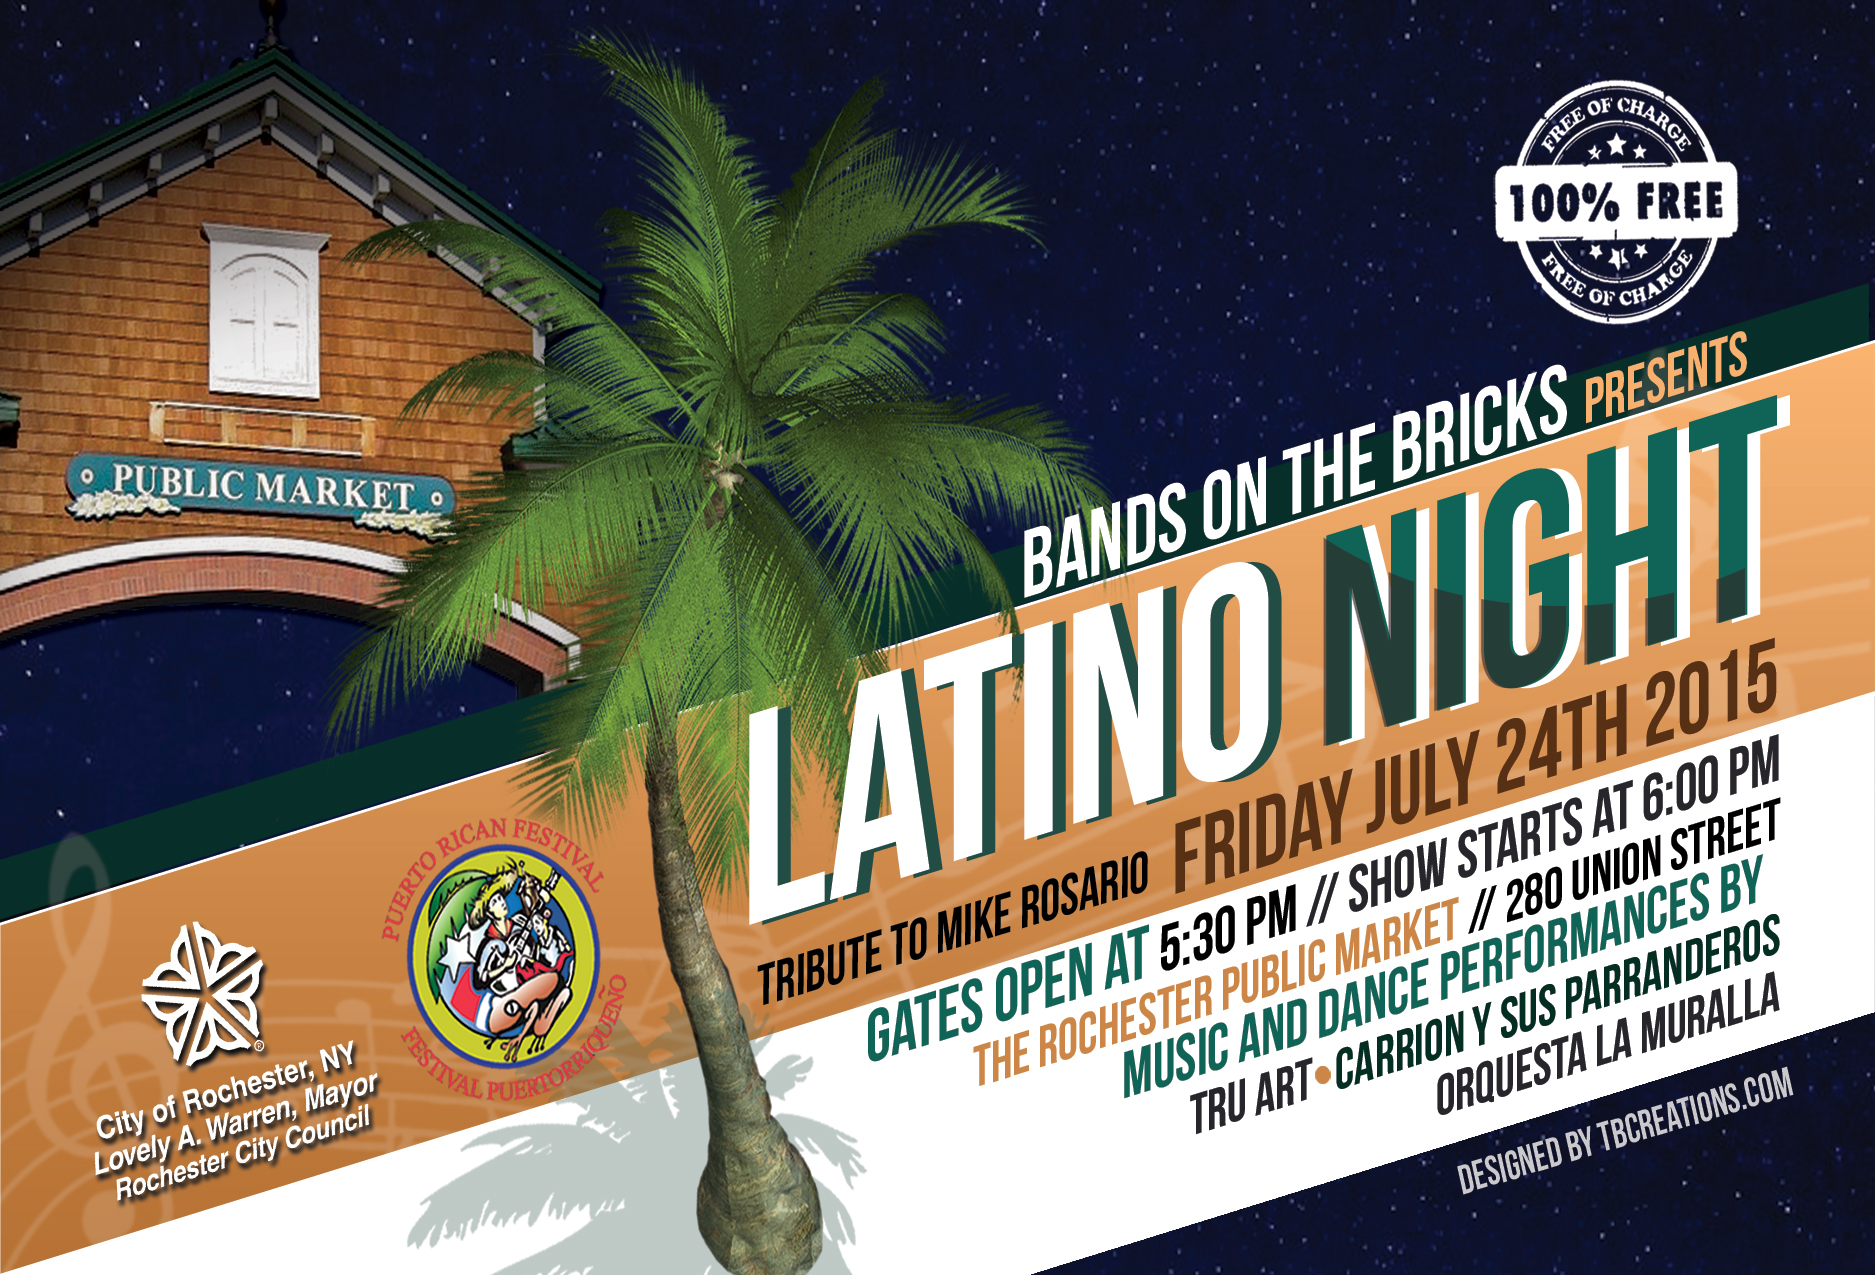 Latino Night 2015